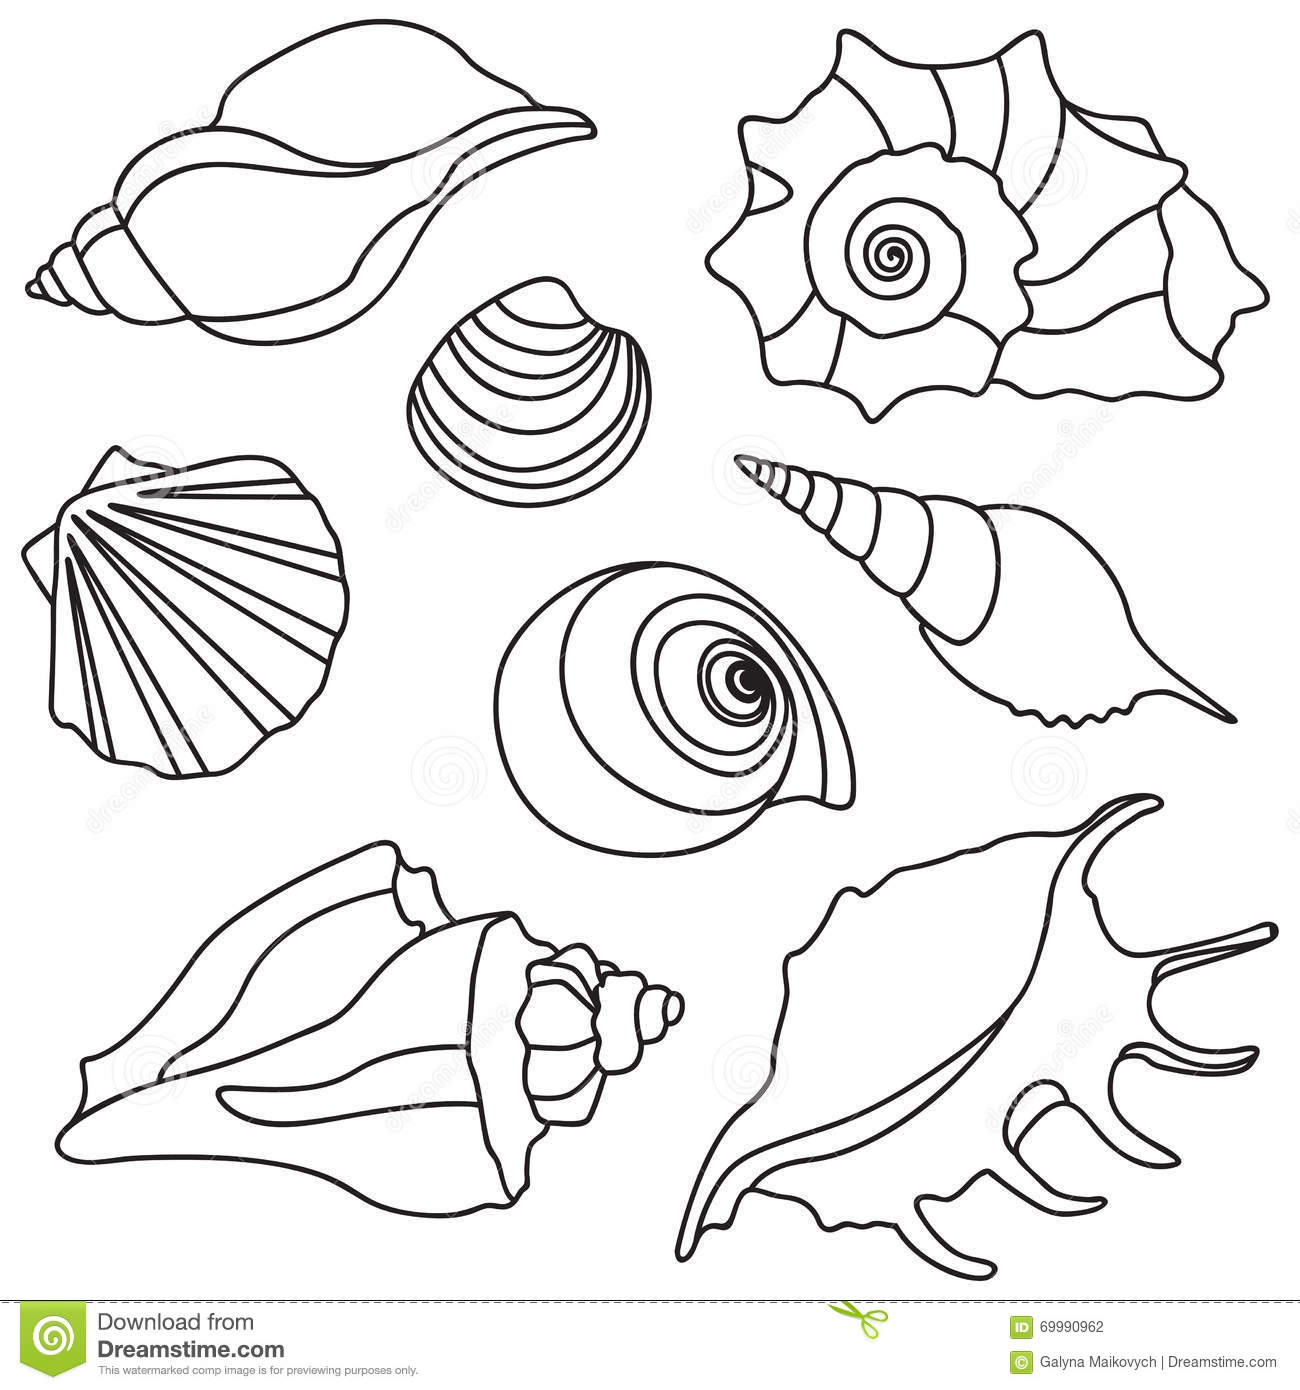 Sketch Of Scallop Coloring Pages